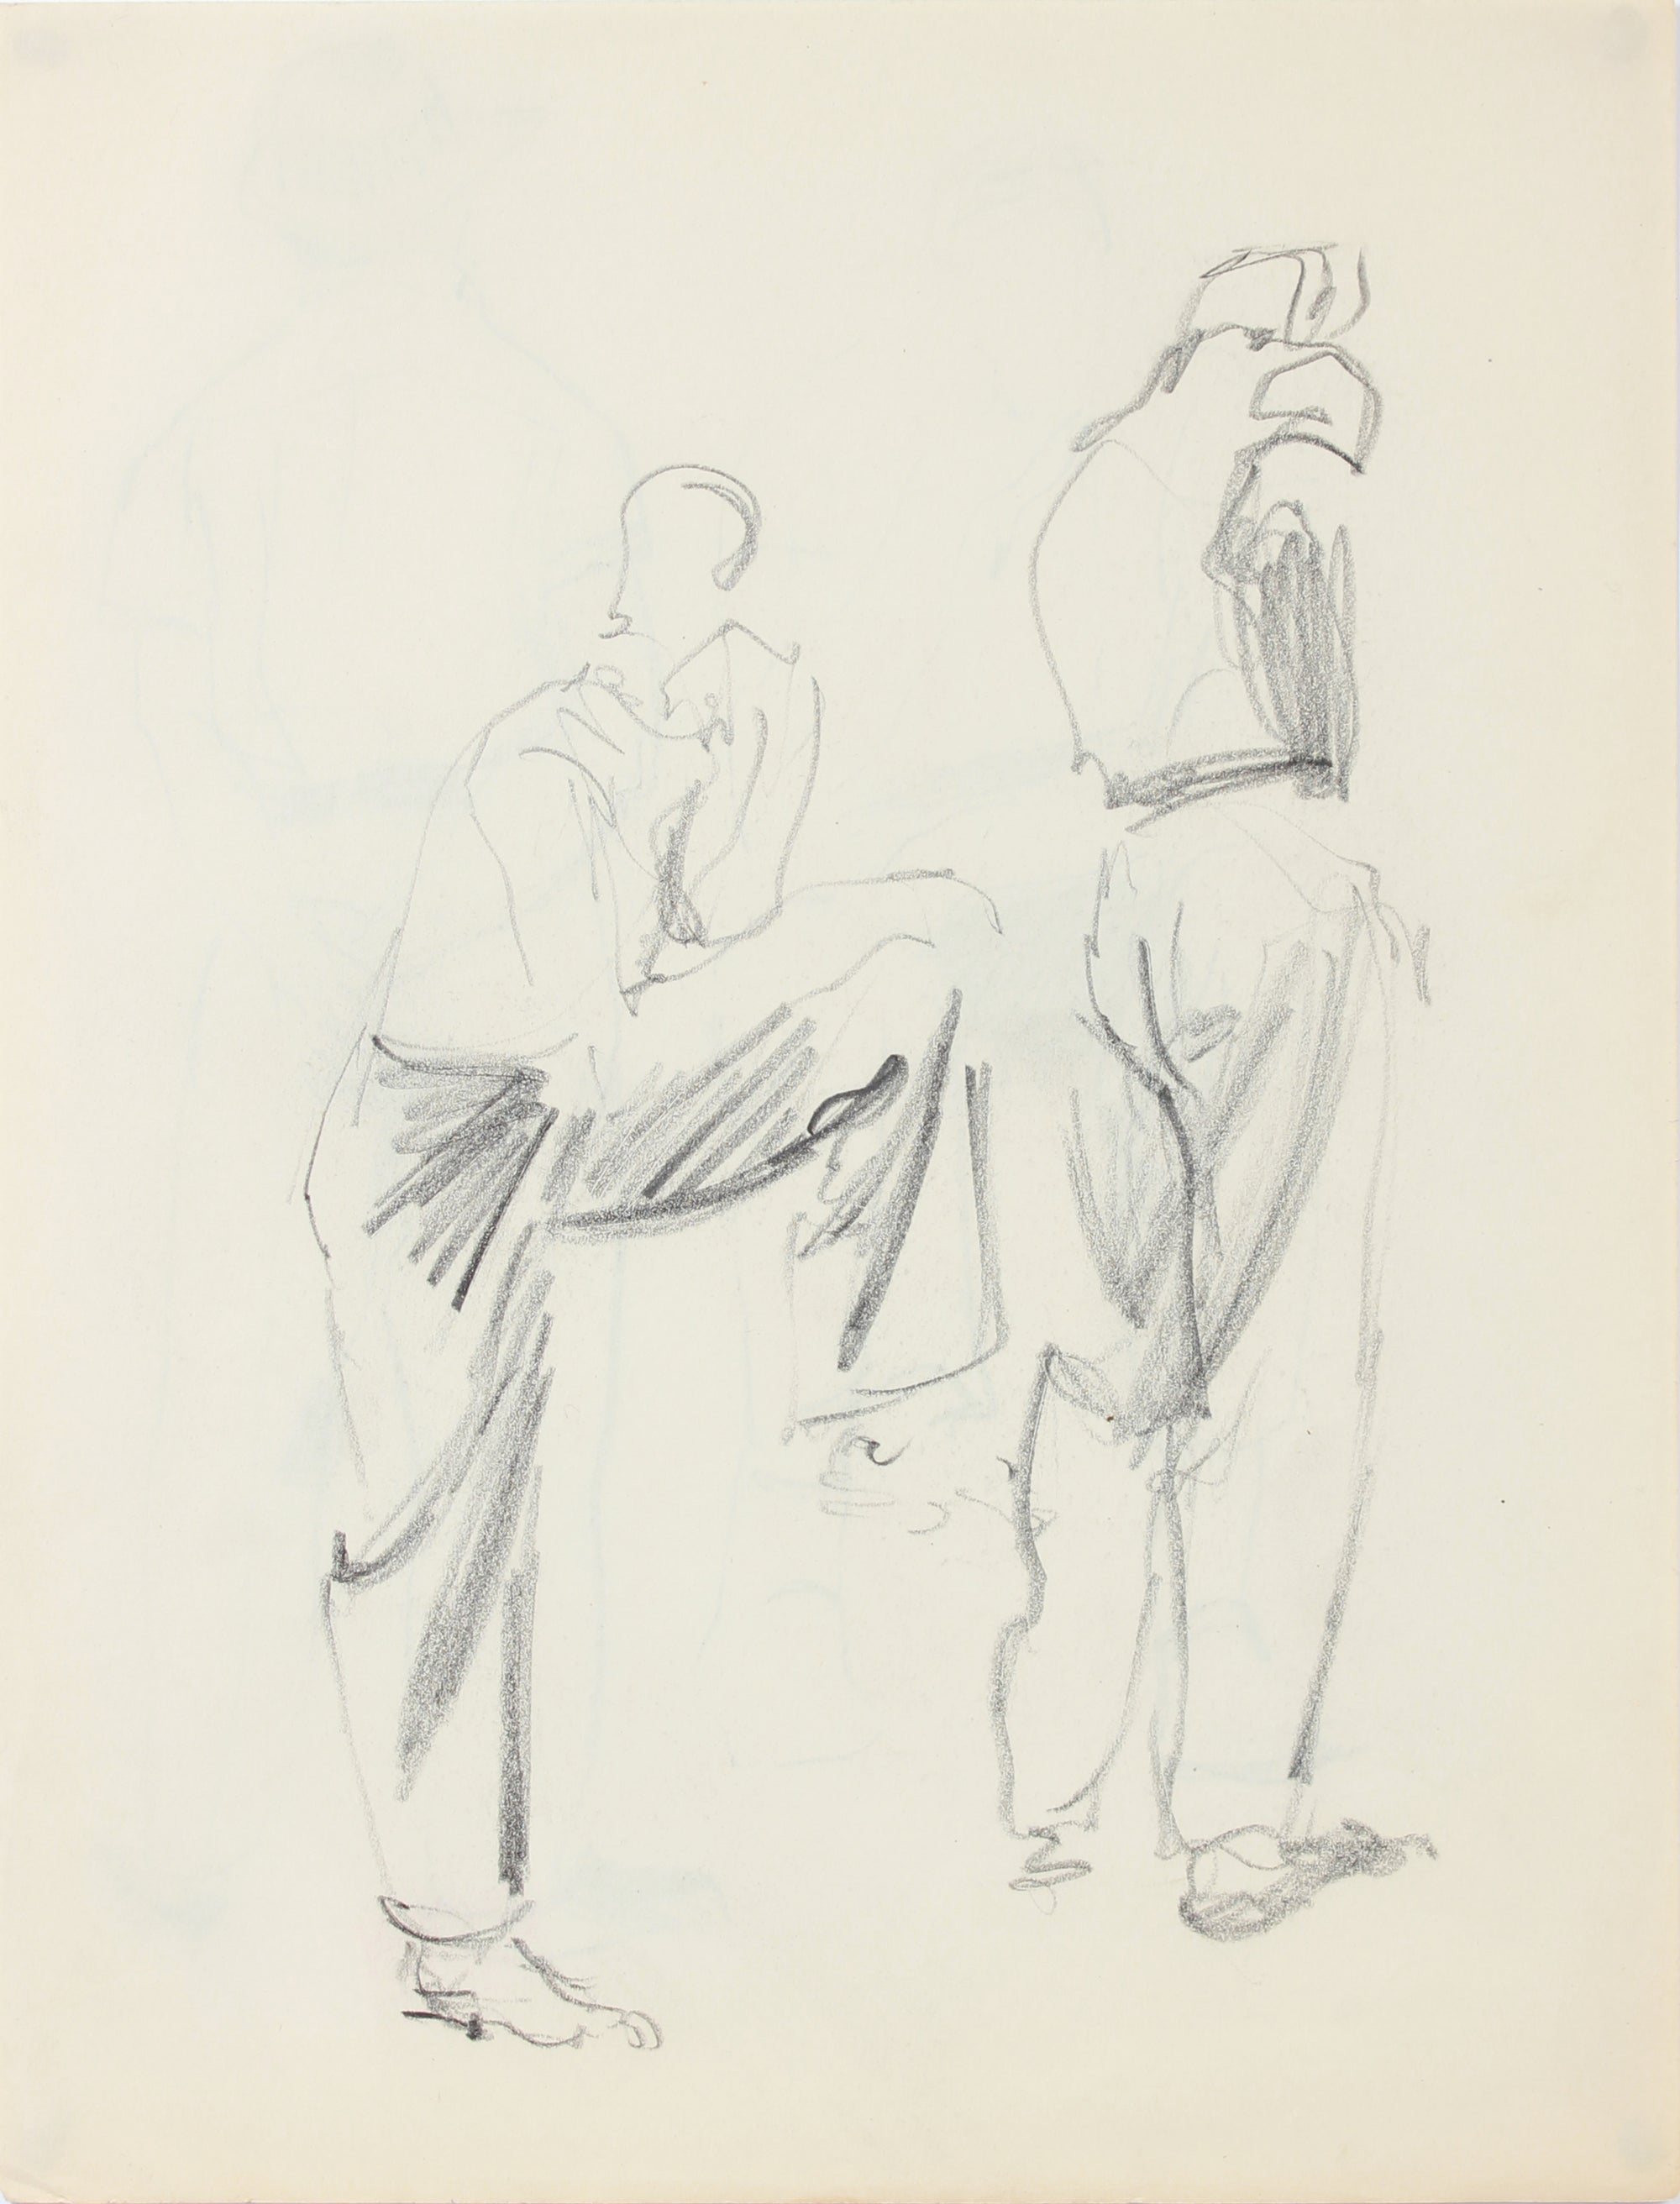 Stylized Sketch of Two Male Figures <br>1940-50s Graphite <br><br>#A8531